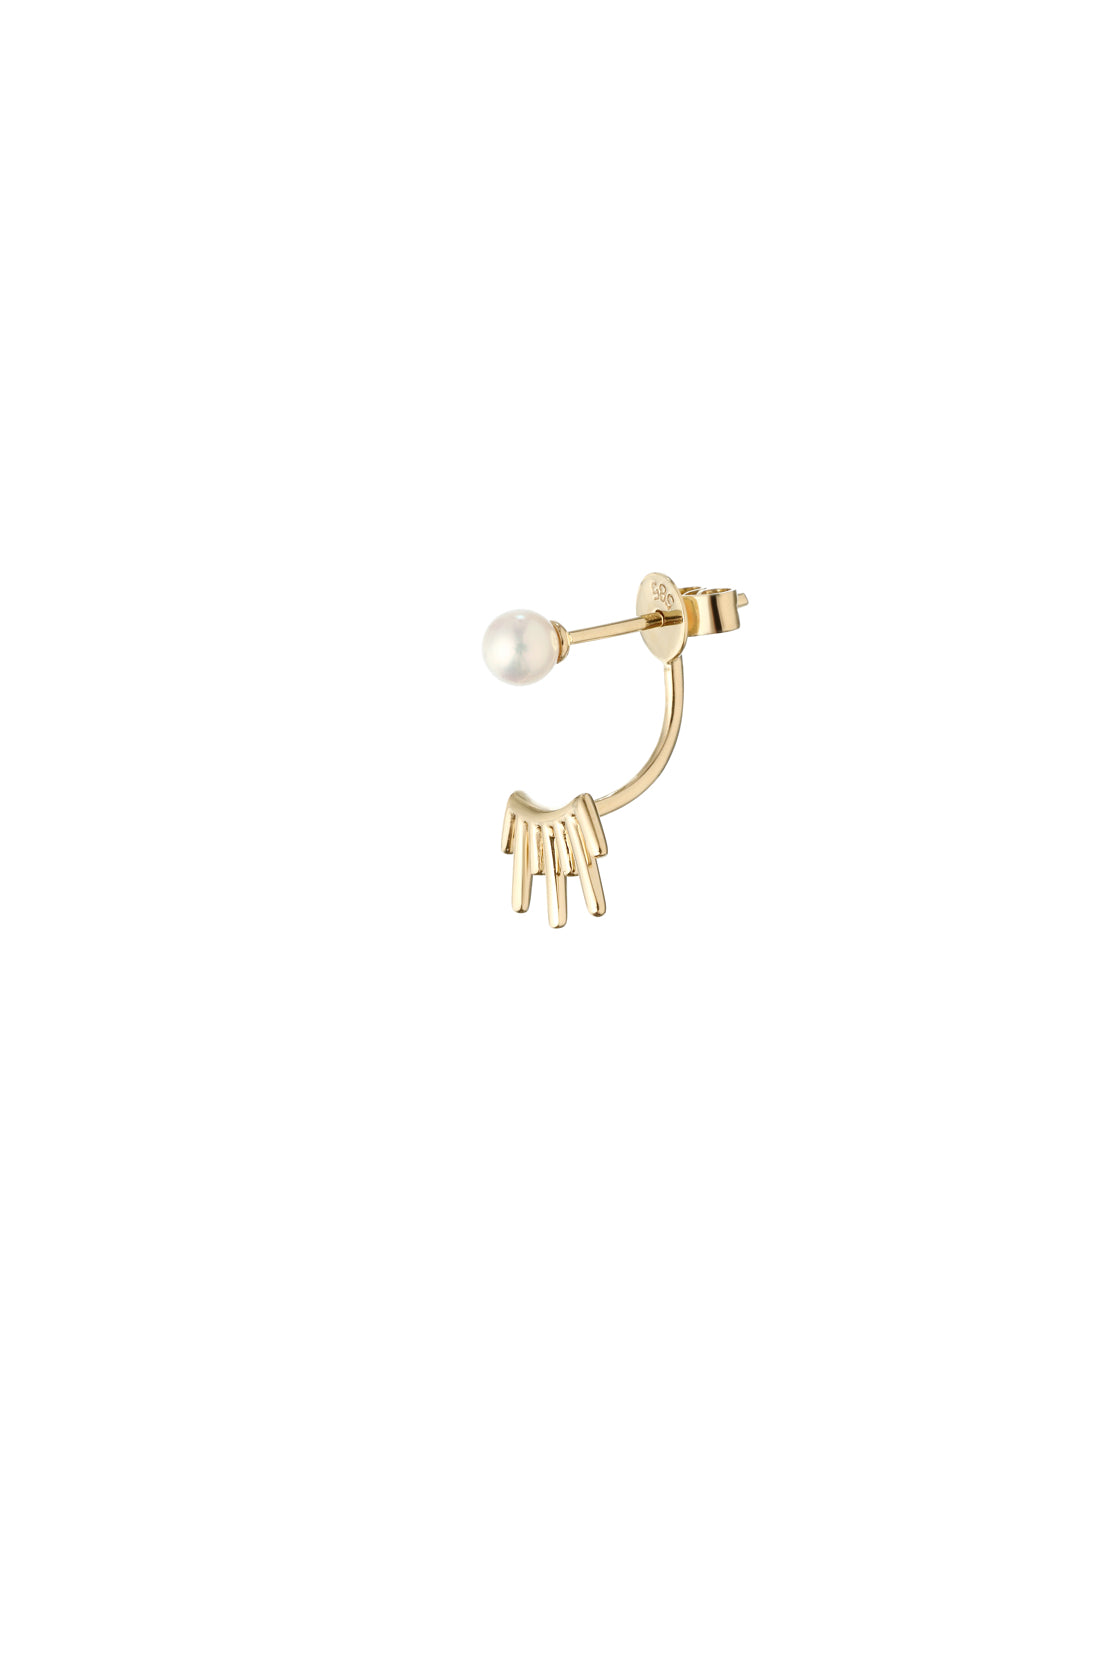 14k Gold and Japanese AKOYA Pearl Sunset Earring (1 Piece)